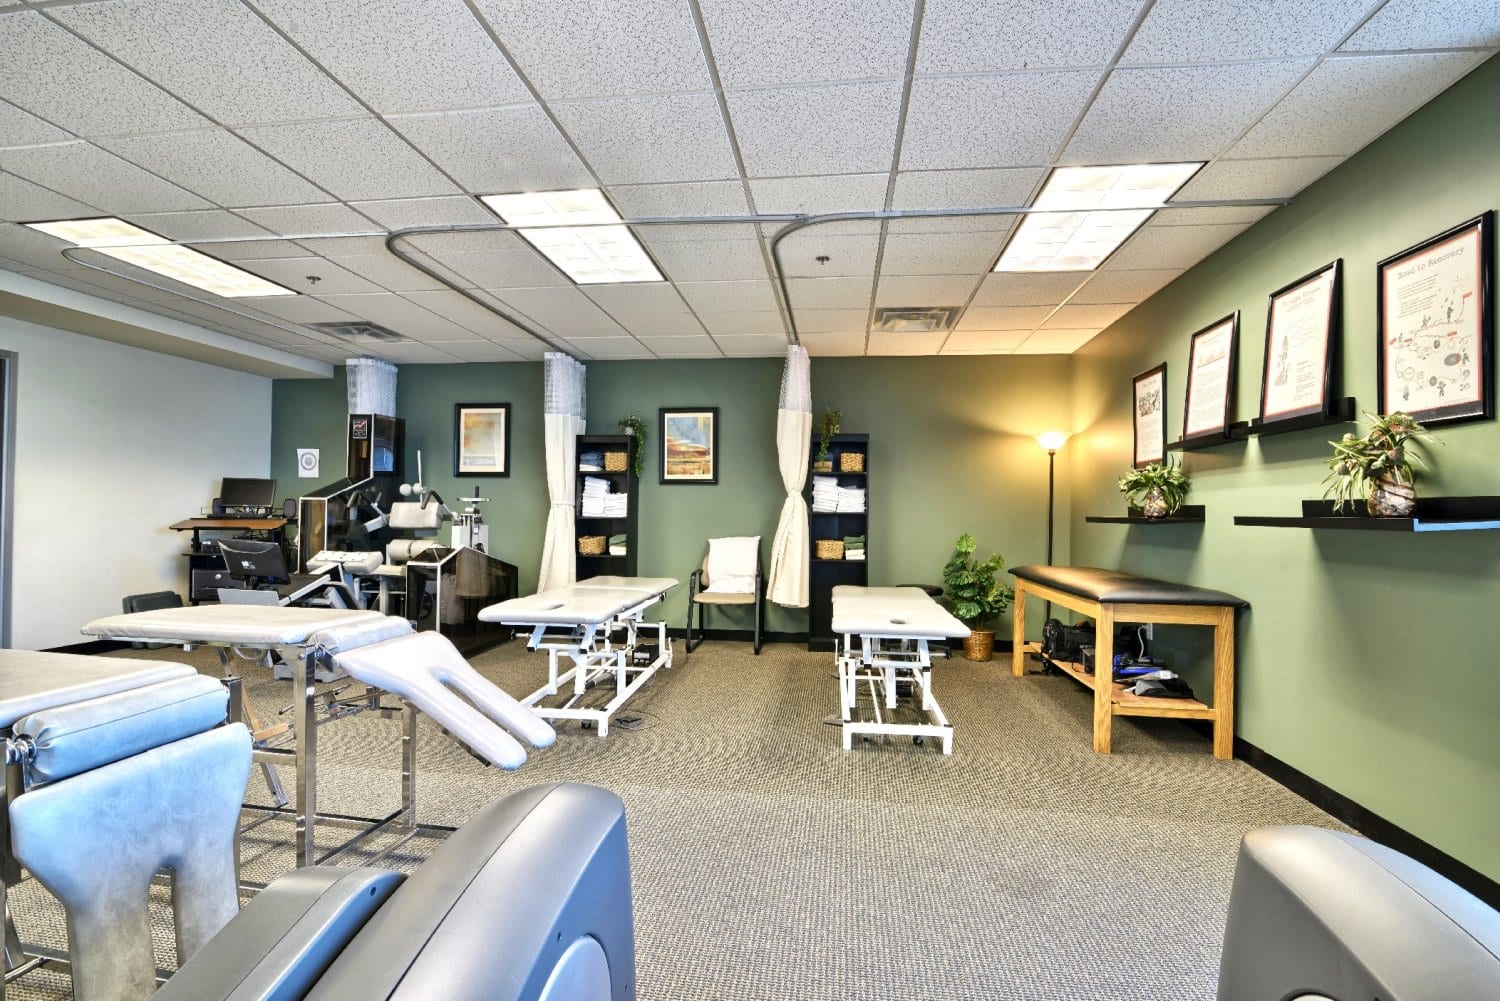 A photo of the interior of our physical therapy clinic. The walls are light green and there are stretch beds in the photo. The facility is in Woburn, Massachusetts.